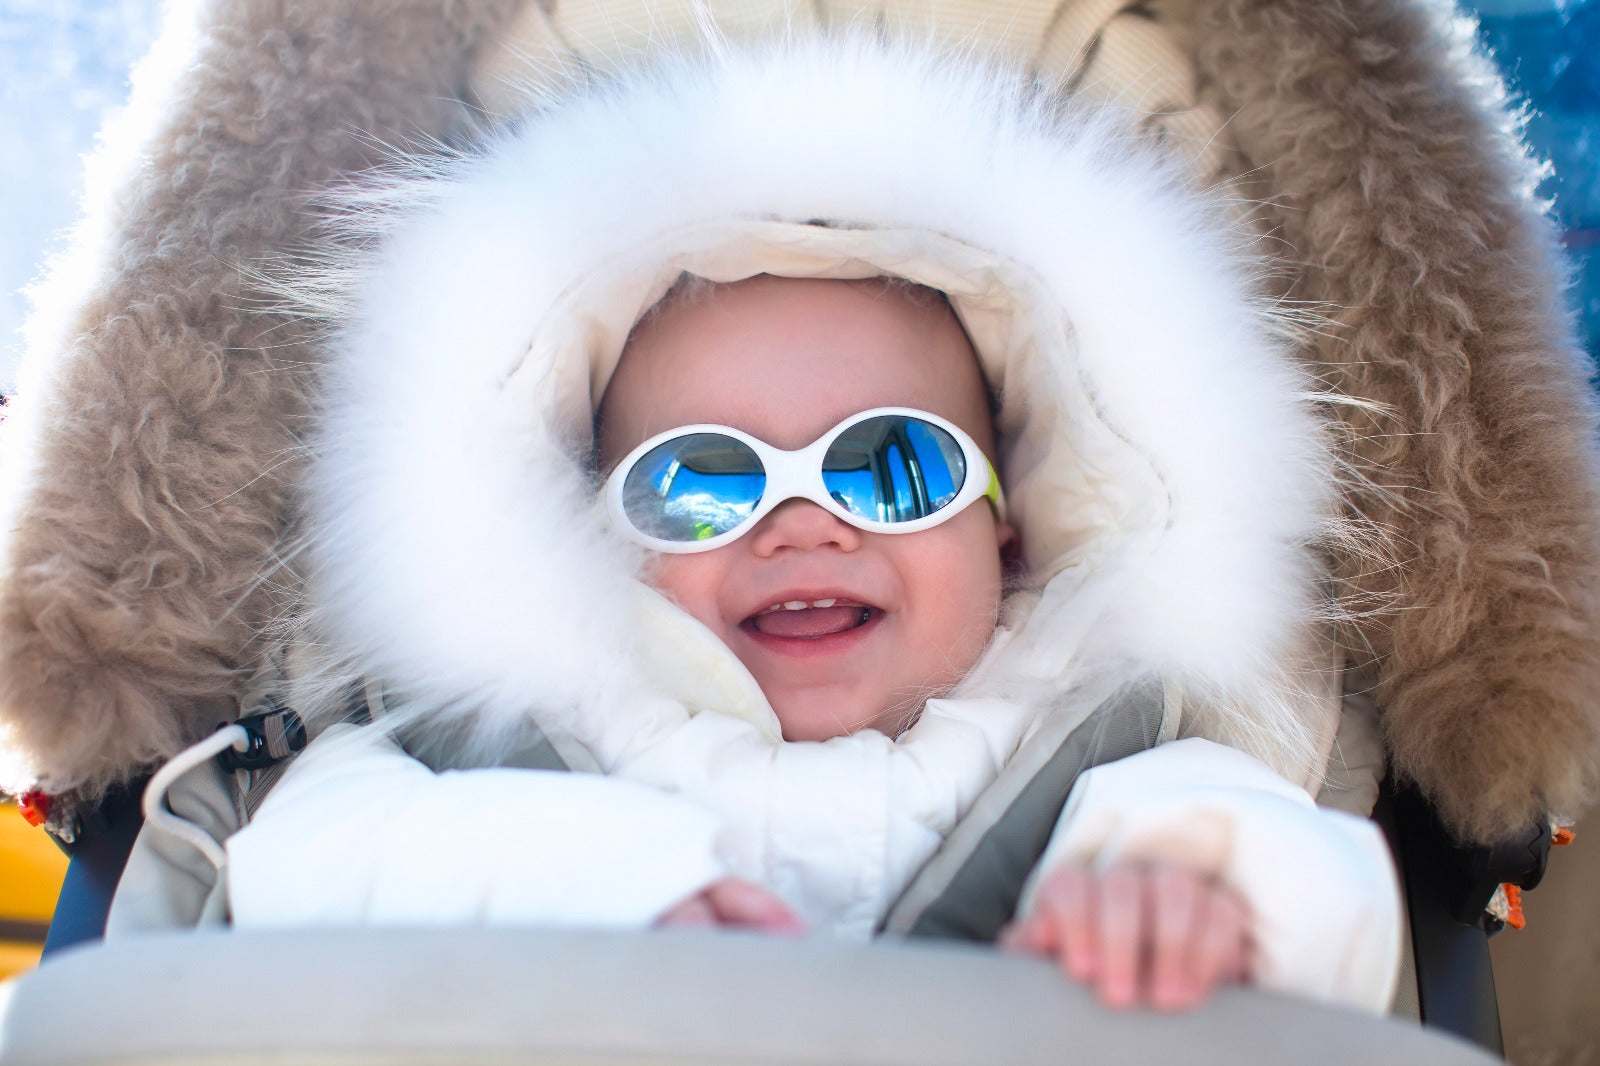 Brush On Block image of baby in parka and sunglasses